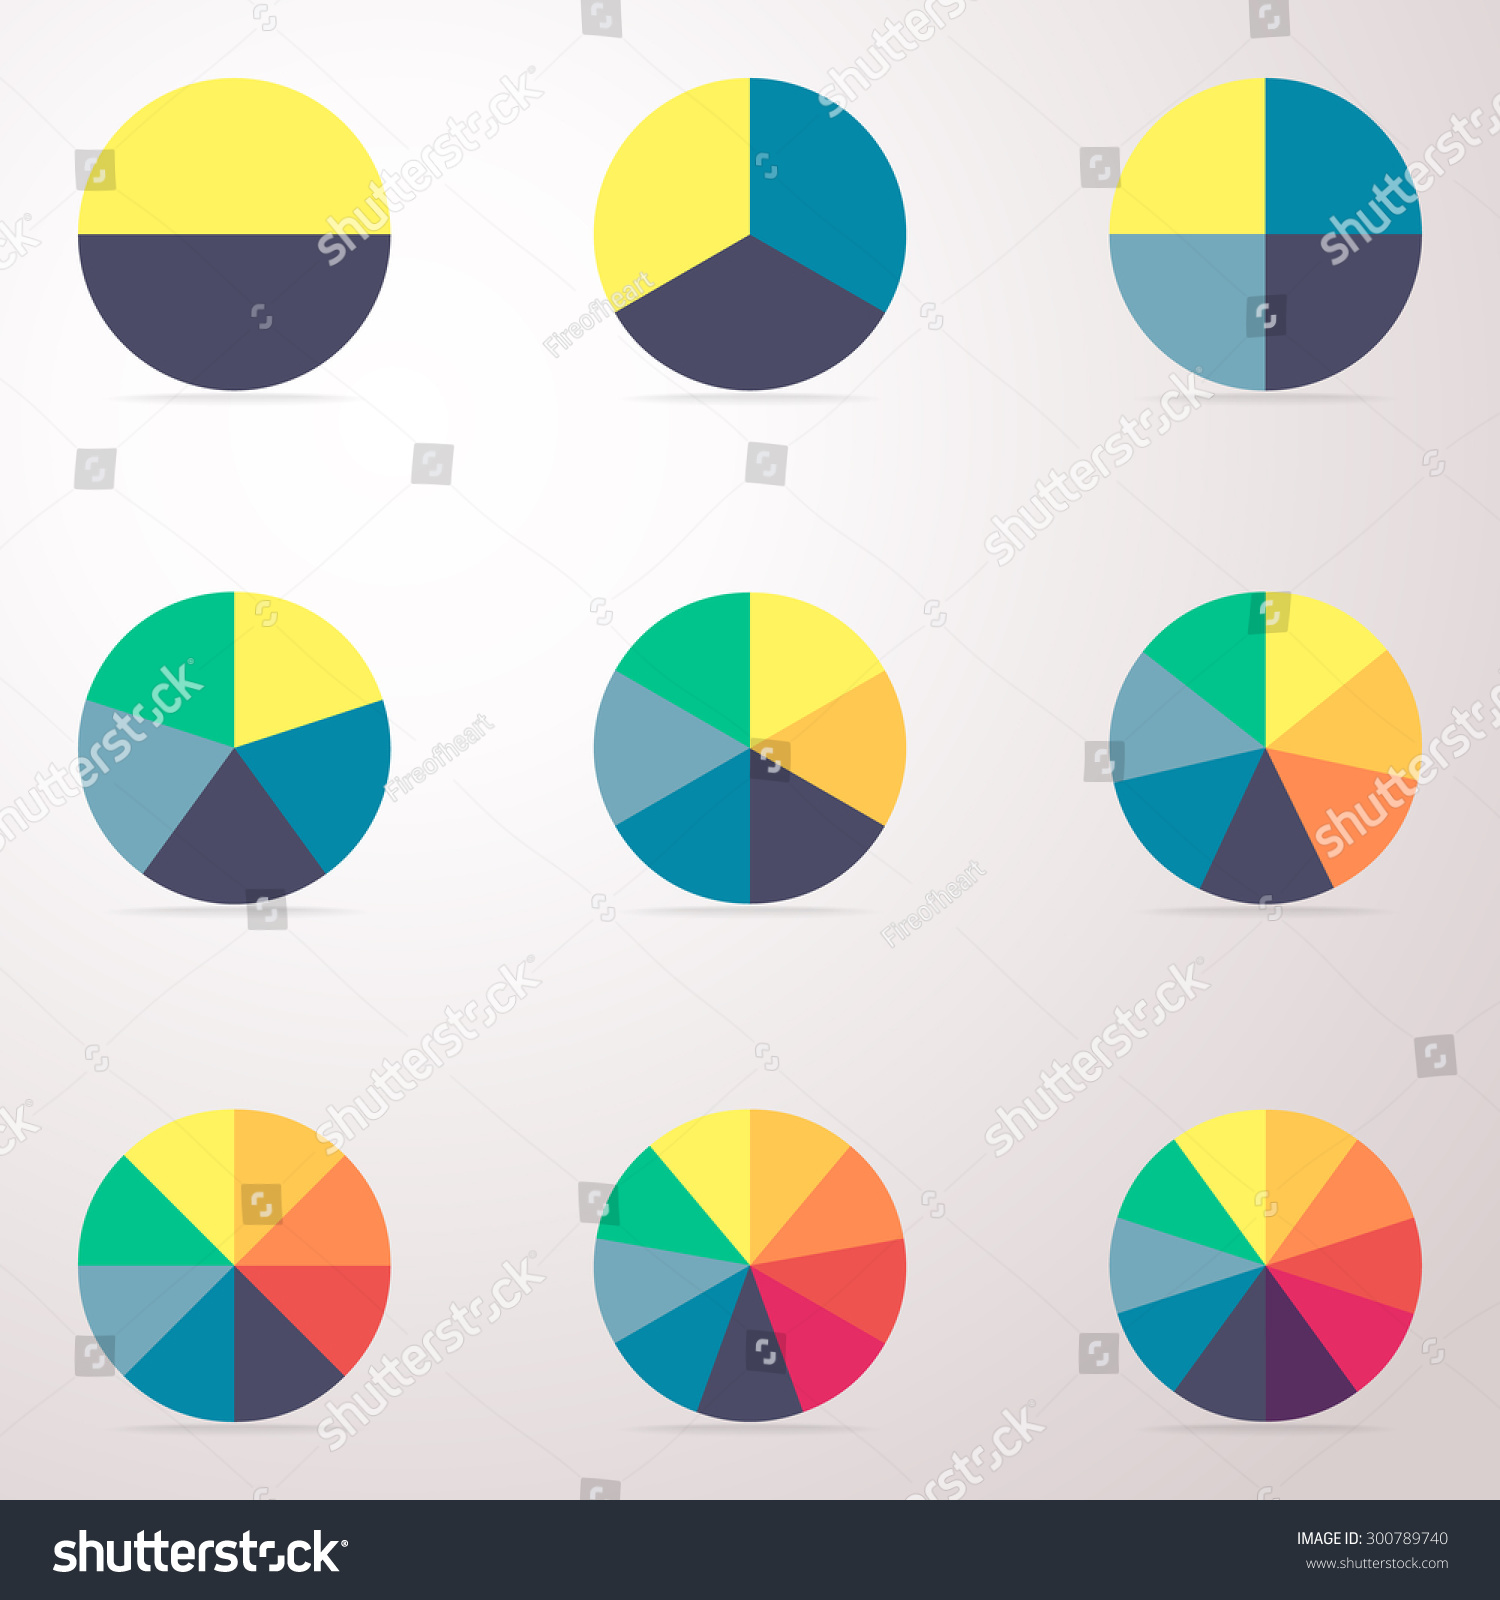 simple business flat pie chart graph stock vector (royalty free